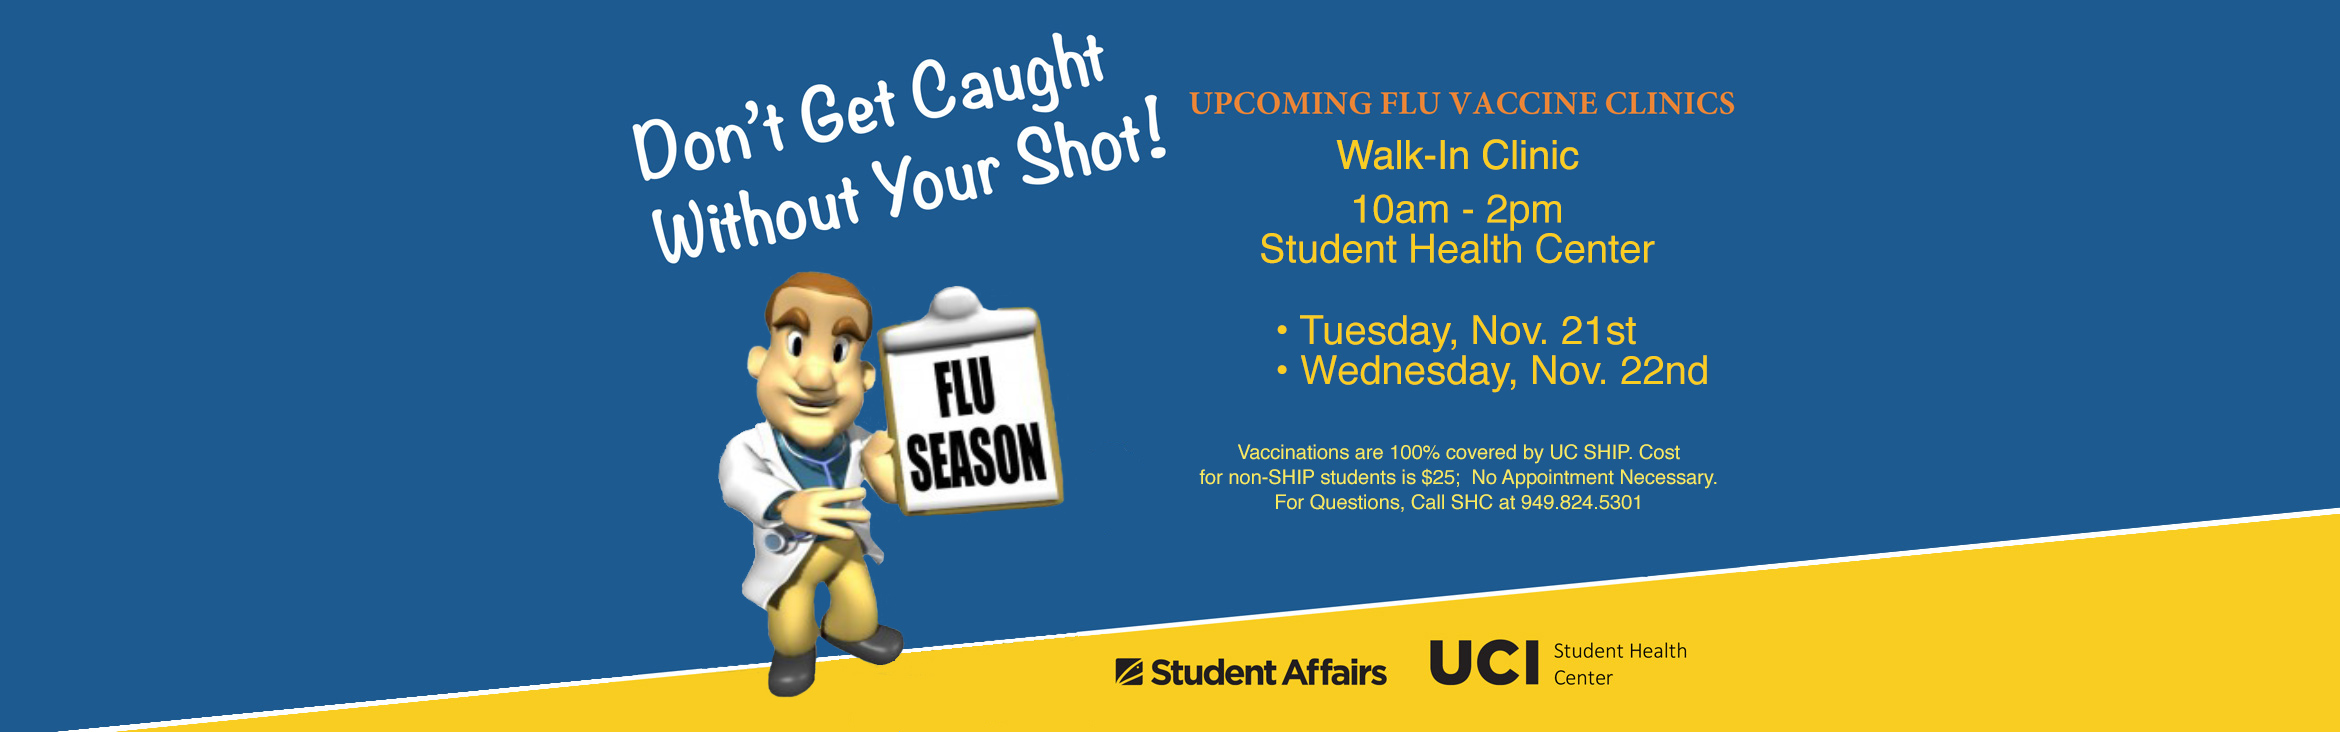 Dont' get caught without your shot! Walk-in clinic from 10am to 2pm at the Student Health Center on Tuesday, November 21st and Wendesday, November 22nd